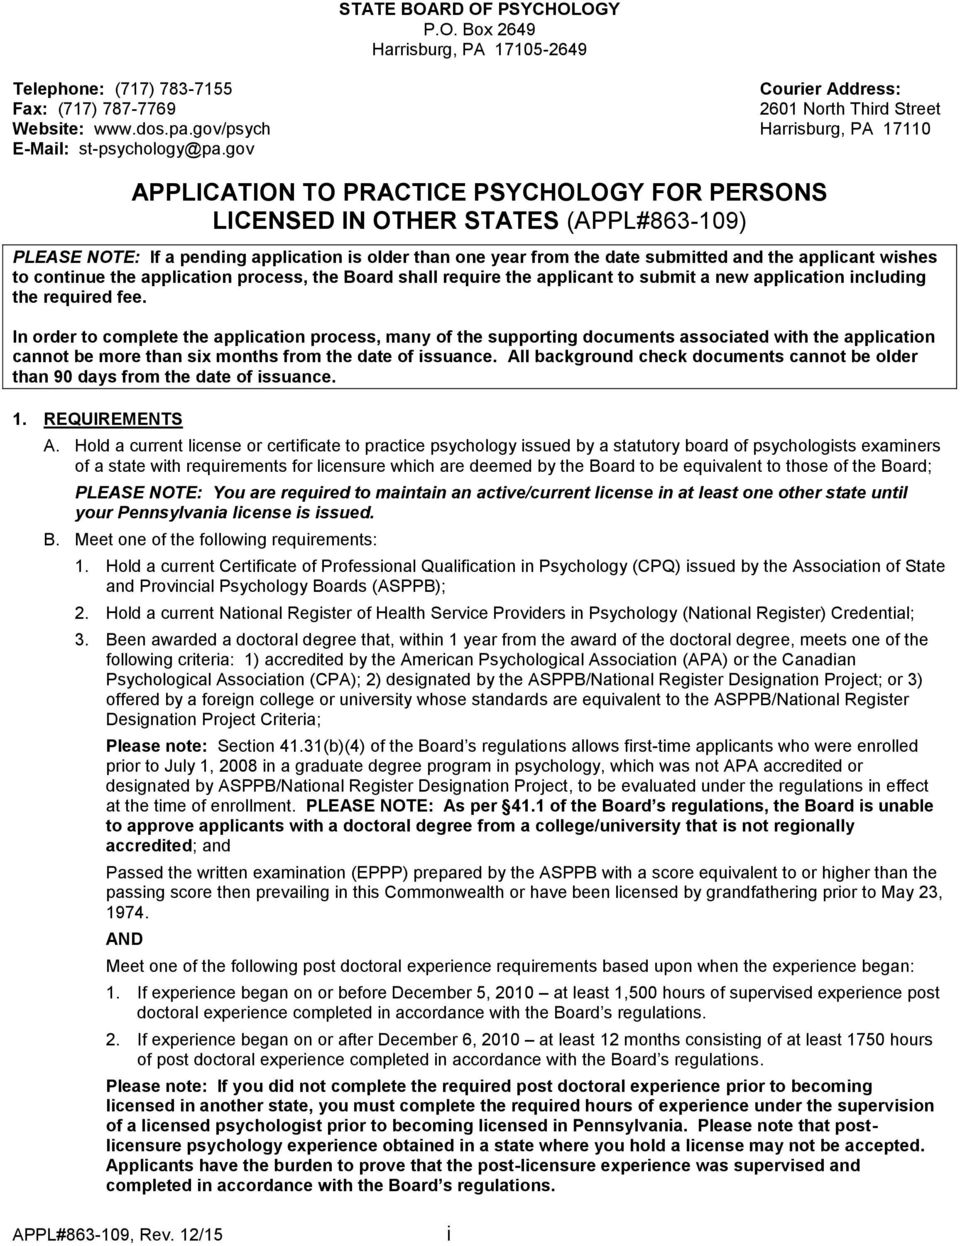 gov APPLICATION TO PRACTICE PSYCHOLOGY FOR PERSONS LICENSED IN OTHER STATES (APPL#863-109) PLEASE NOTE: If a pending application is older than one year from the date submitted and the applicant